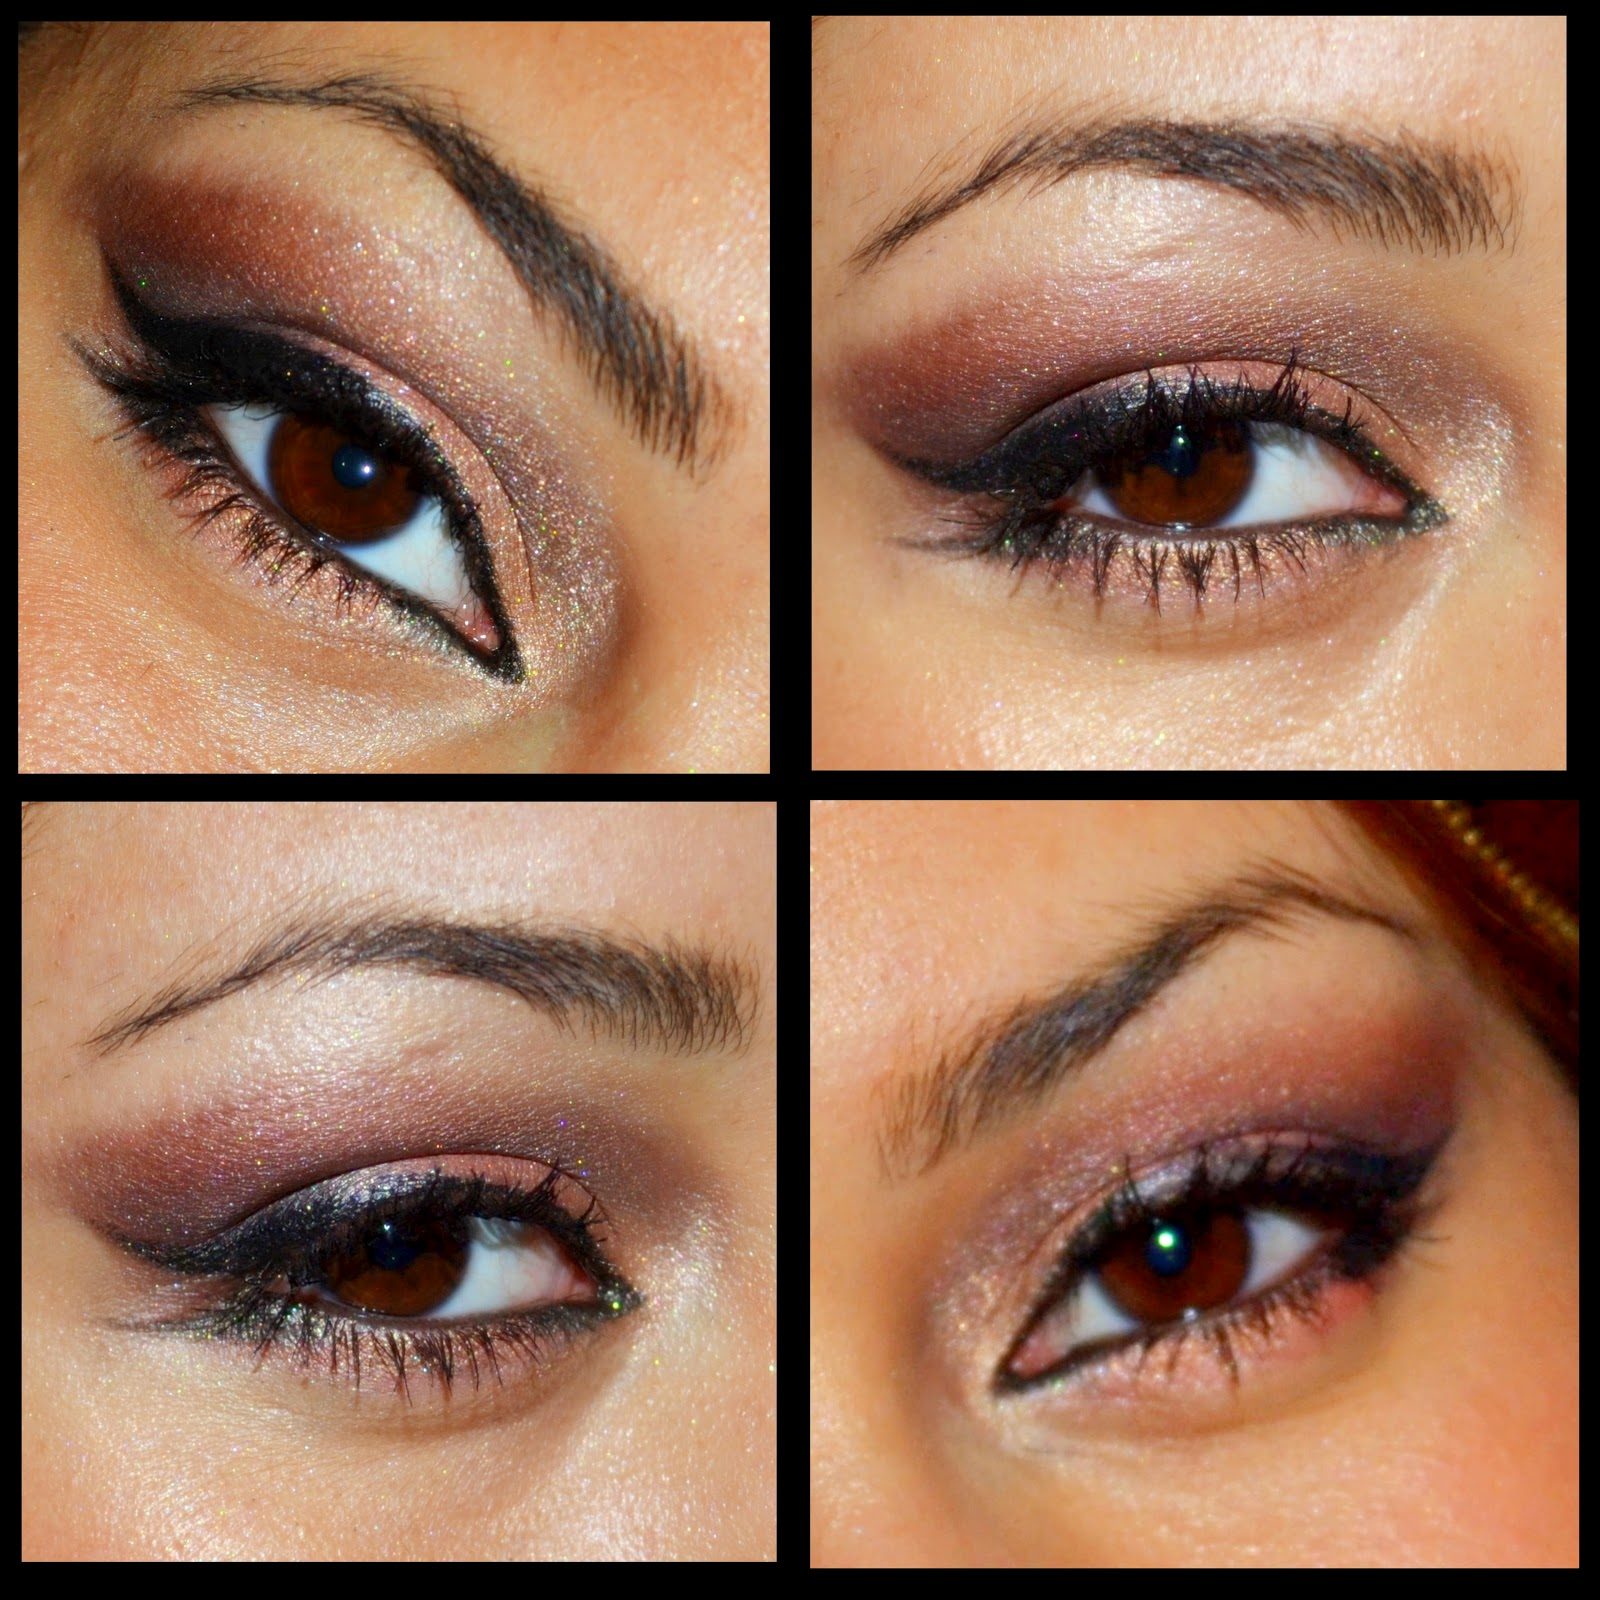 maquillage yeux sans crayon